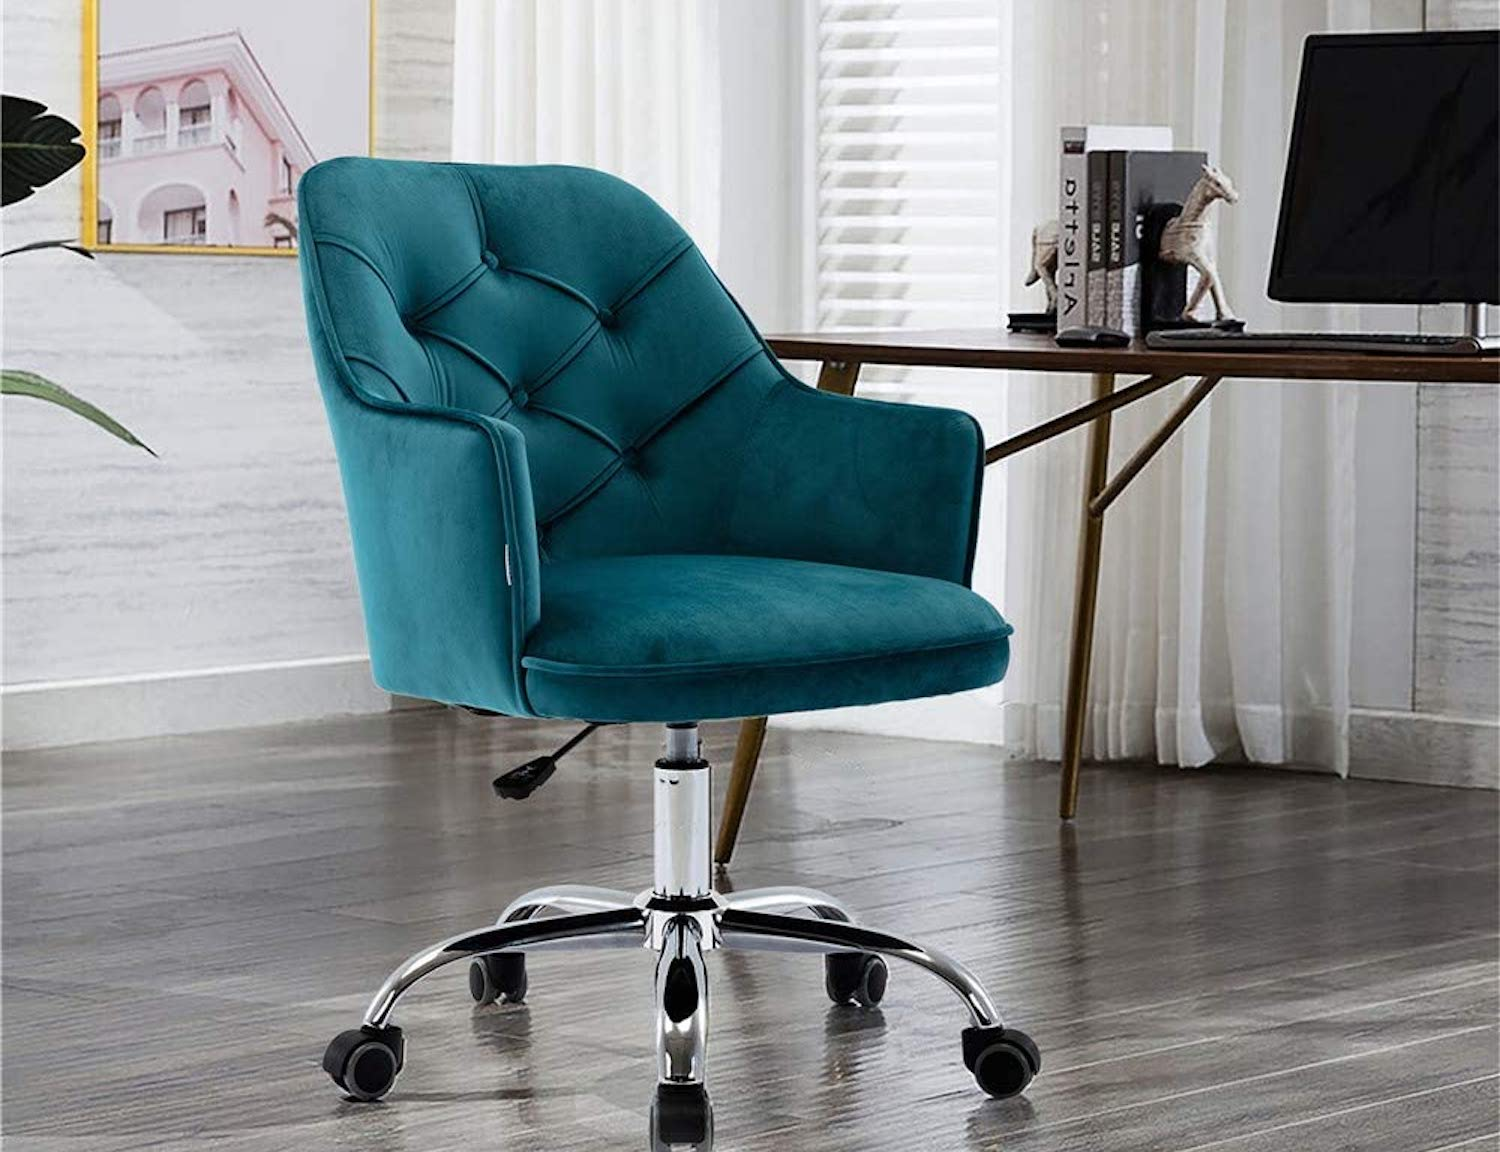 The teal velvet Goujxcy Home Office Chair at a desk.